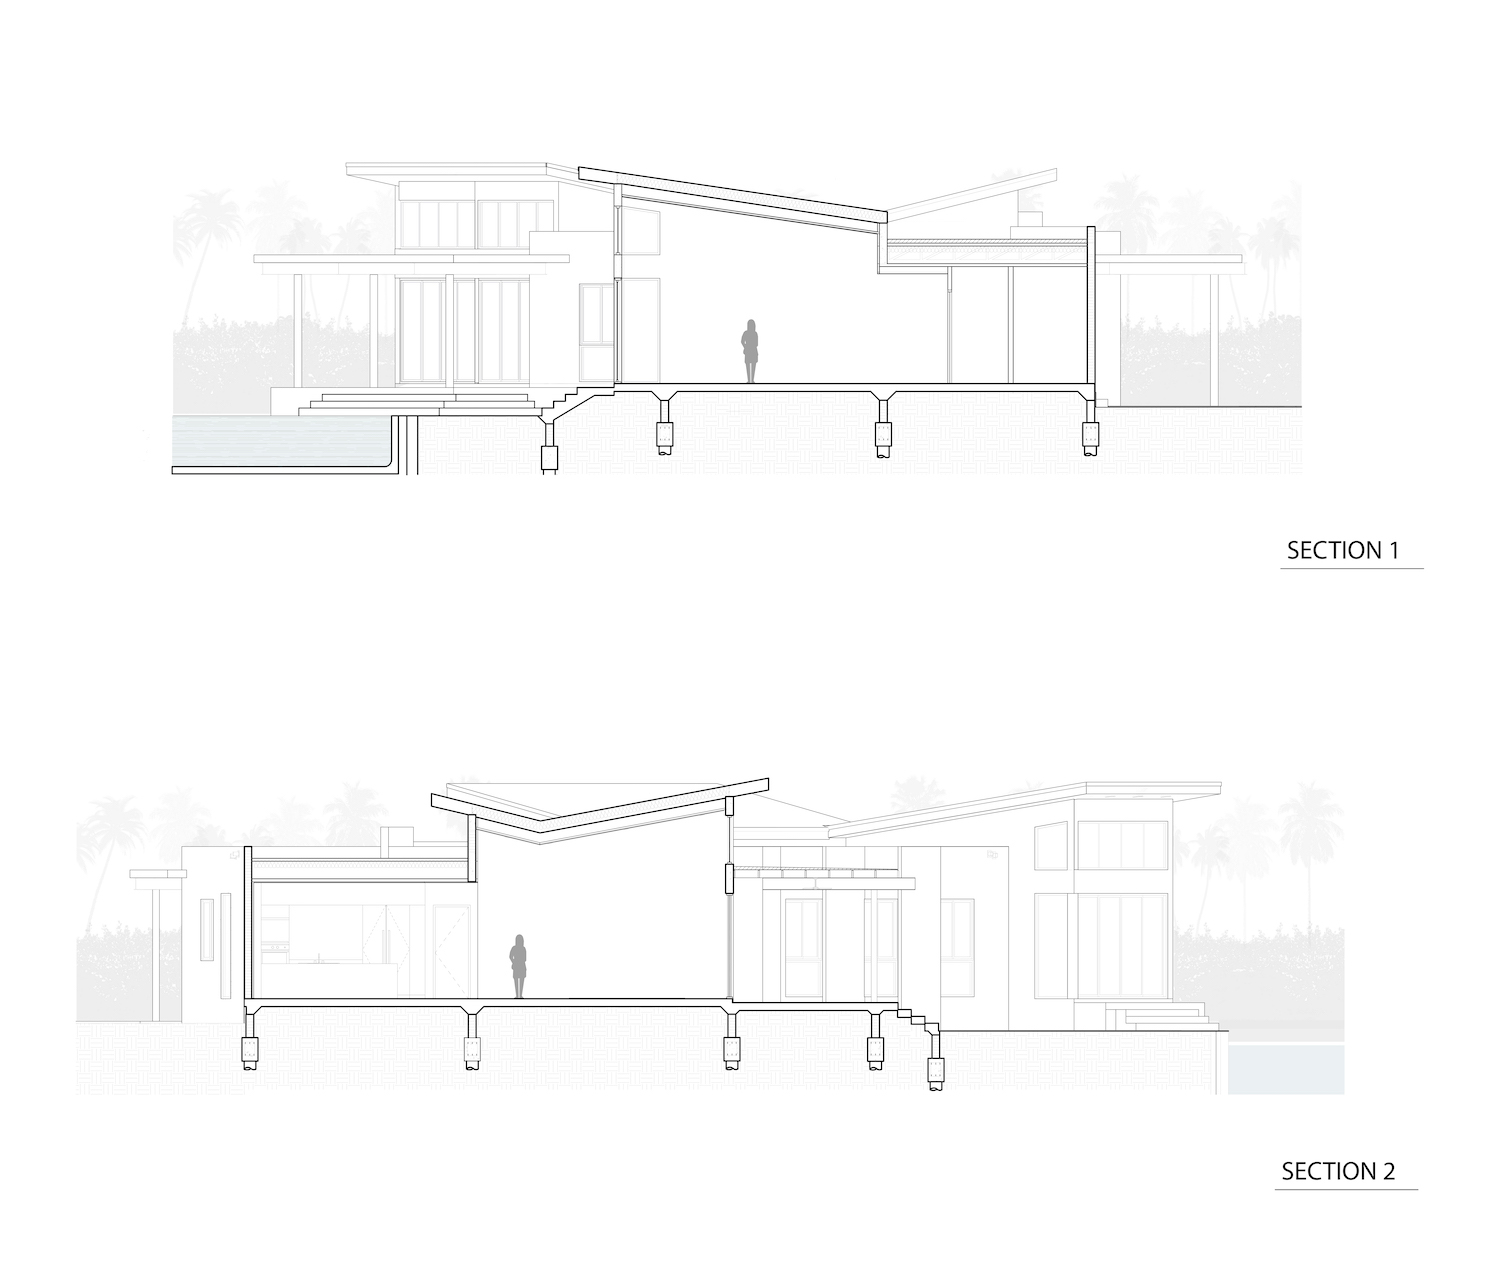 Architectural Sections